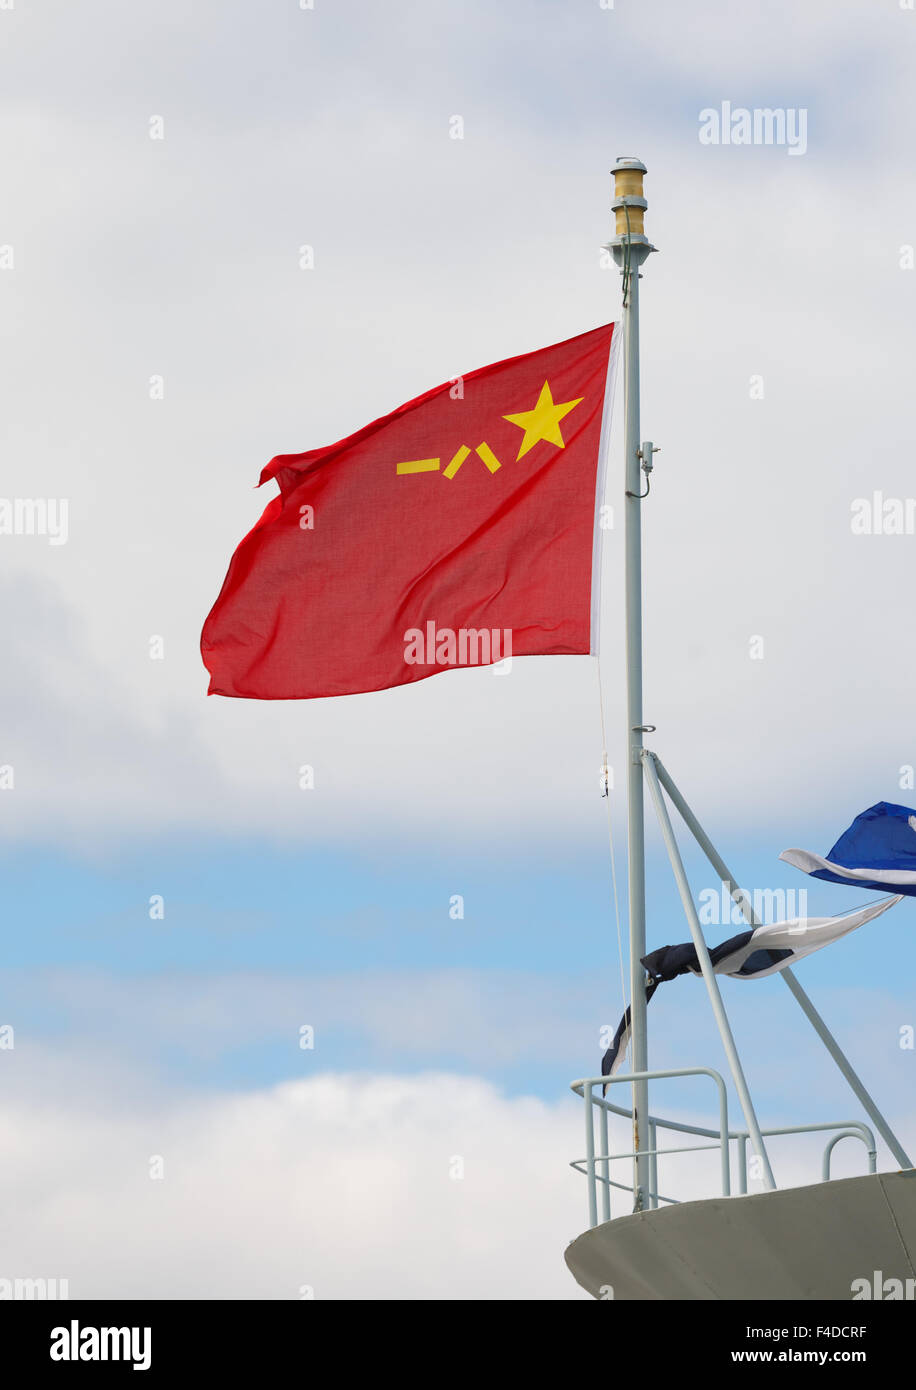 Flag of the People's Liberation Army of the People's Republic of China. - Stock Image